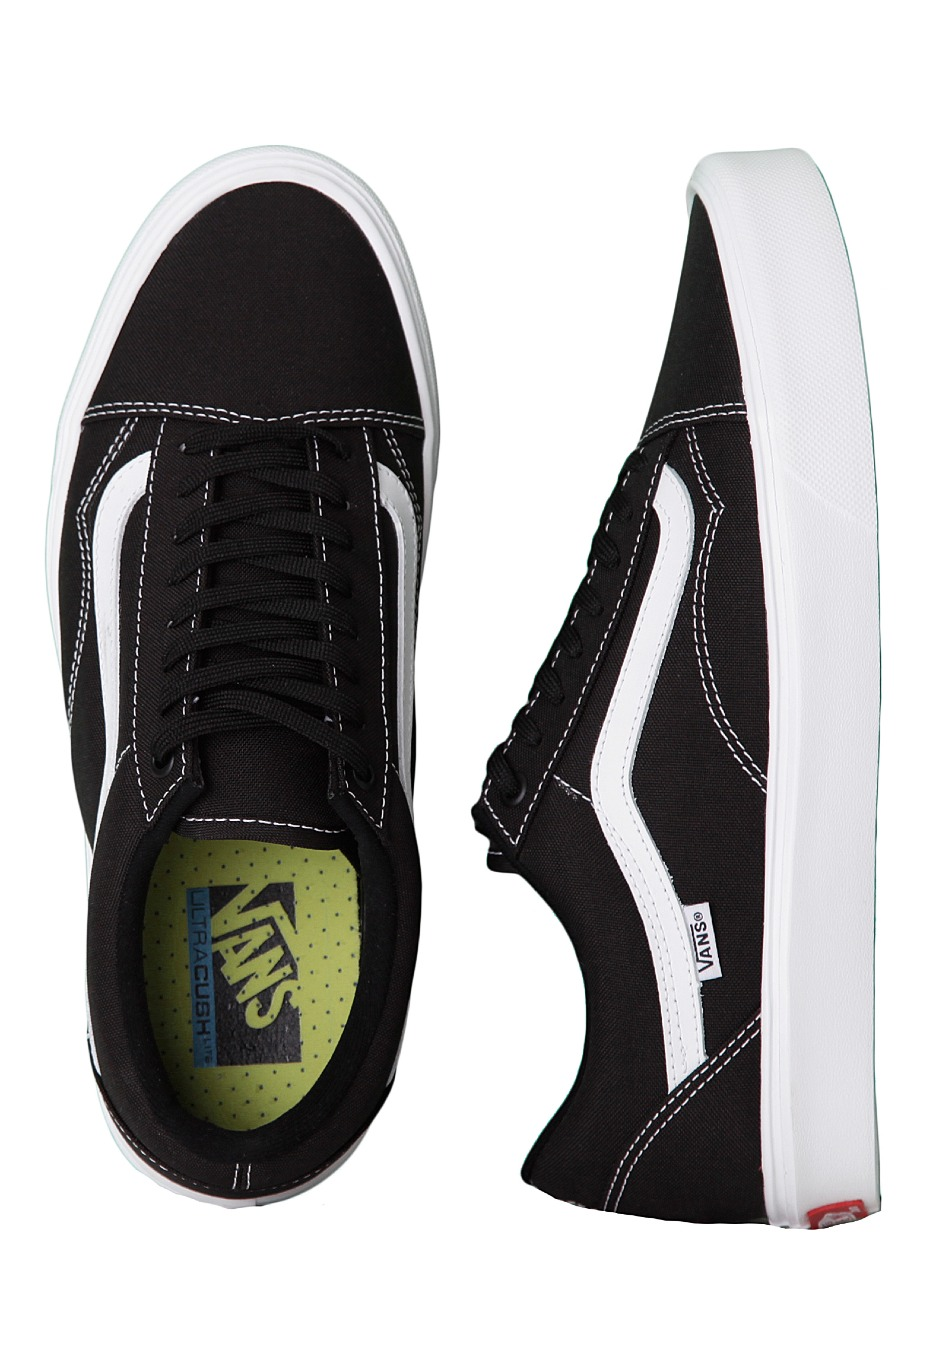 240f89d4dc225 Vans - Old Skool Lite Black/True White - Shoes - Impericon.com UK